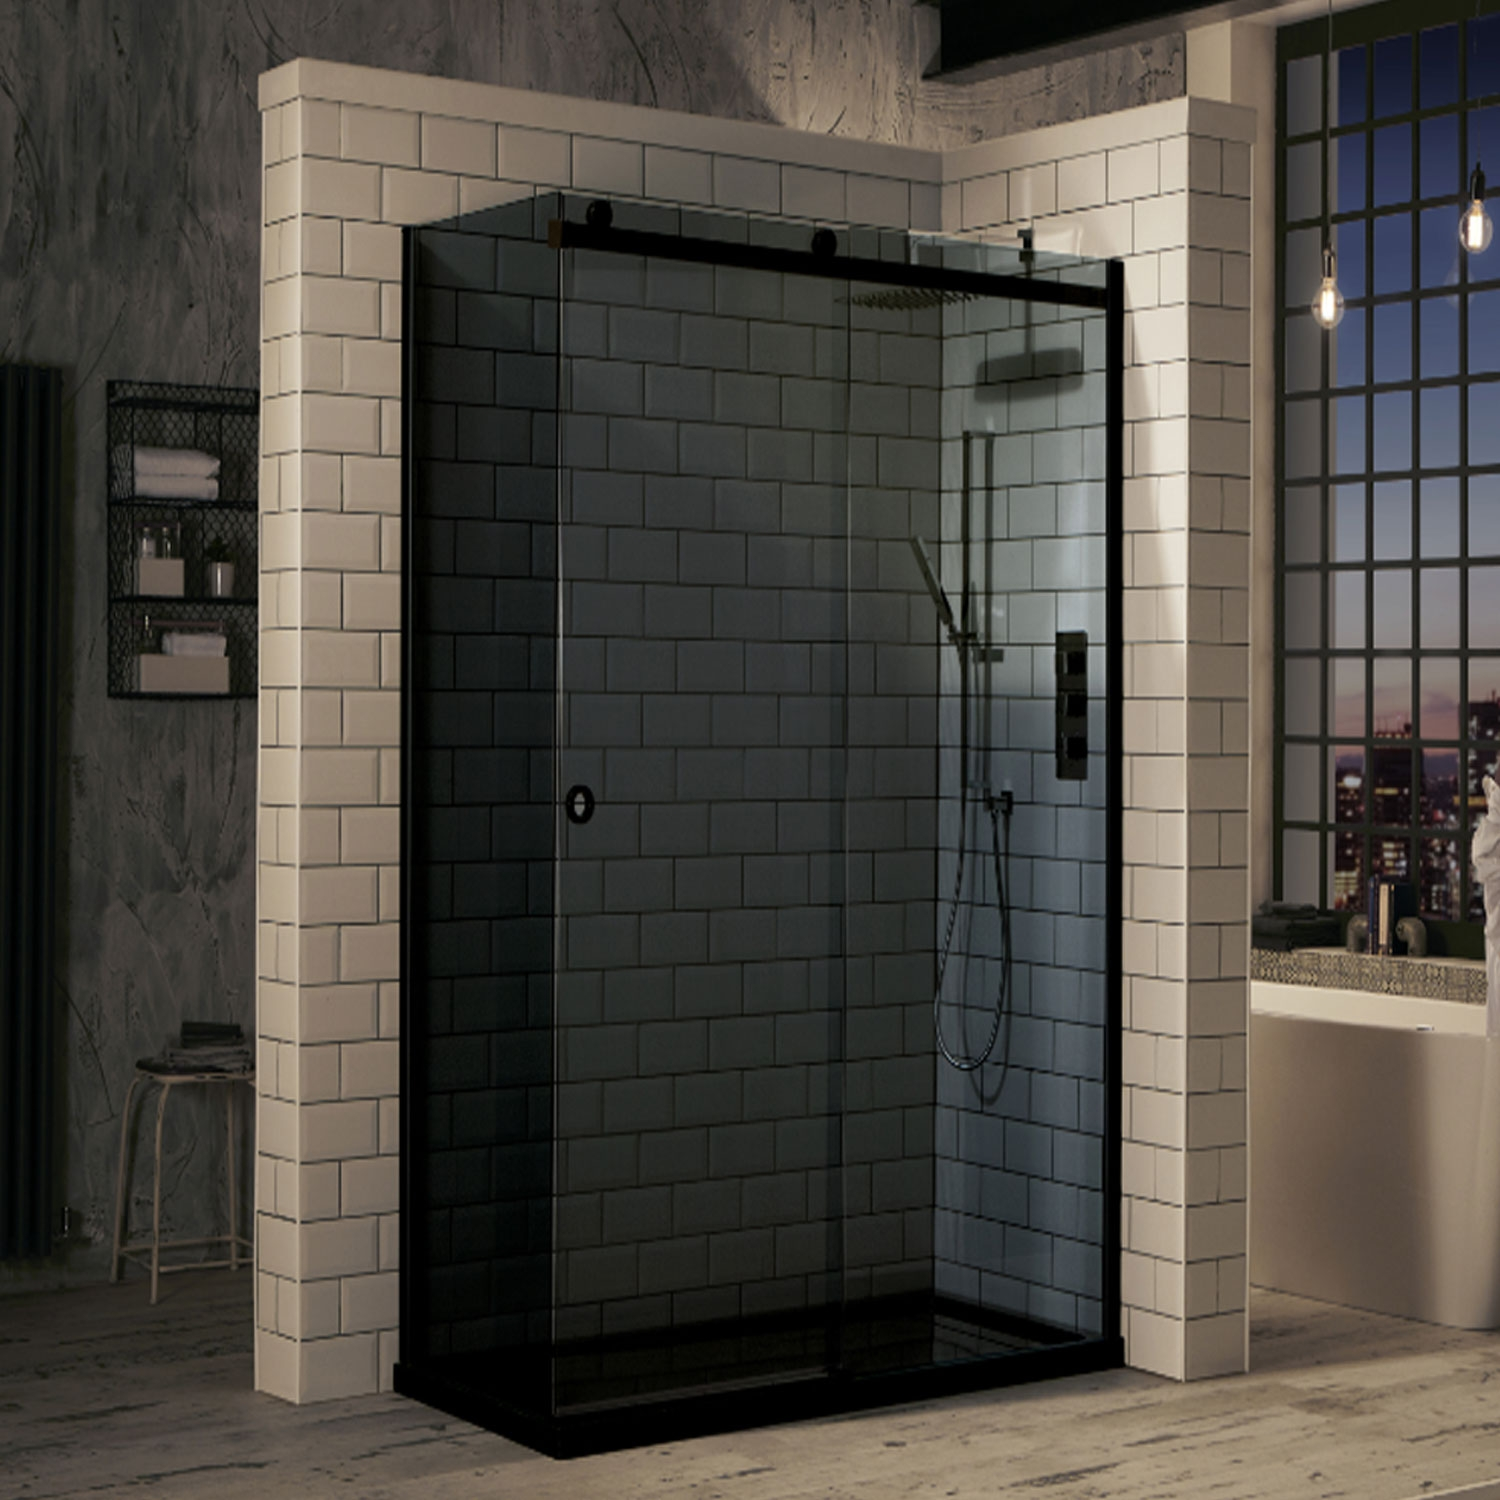 Verona Aquaglass+ Sphere Tinted Sliding Shower Door 1400mm Wide - 8mm Glass